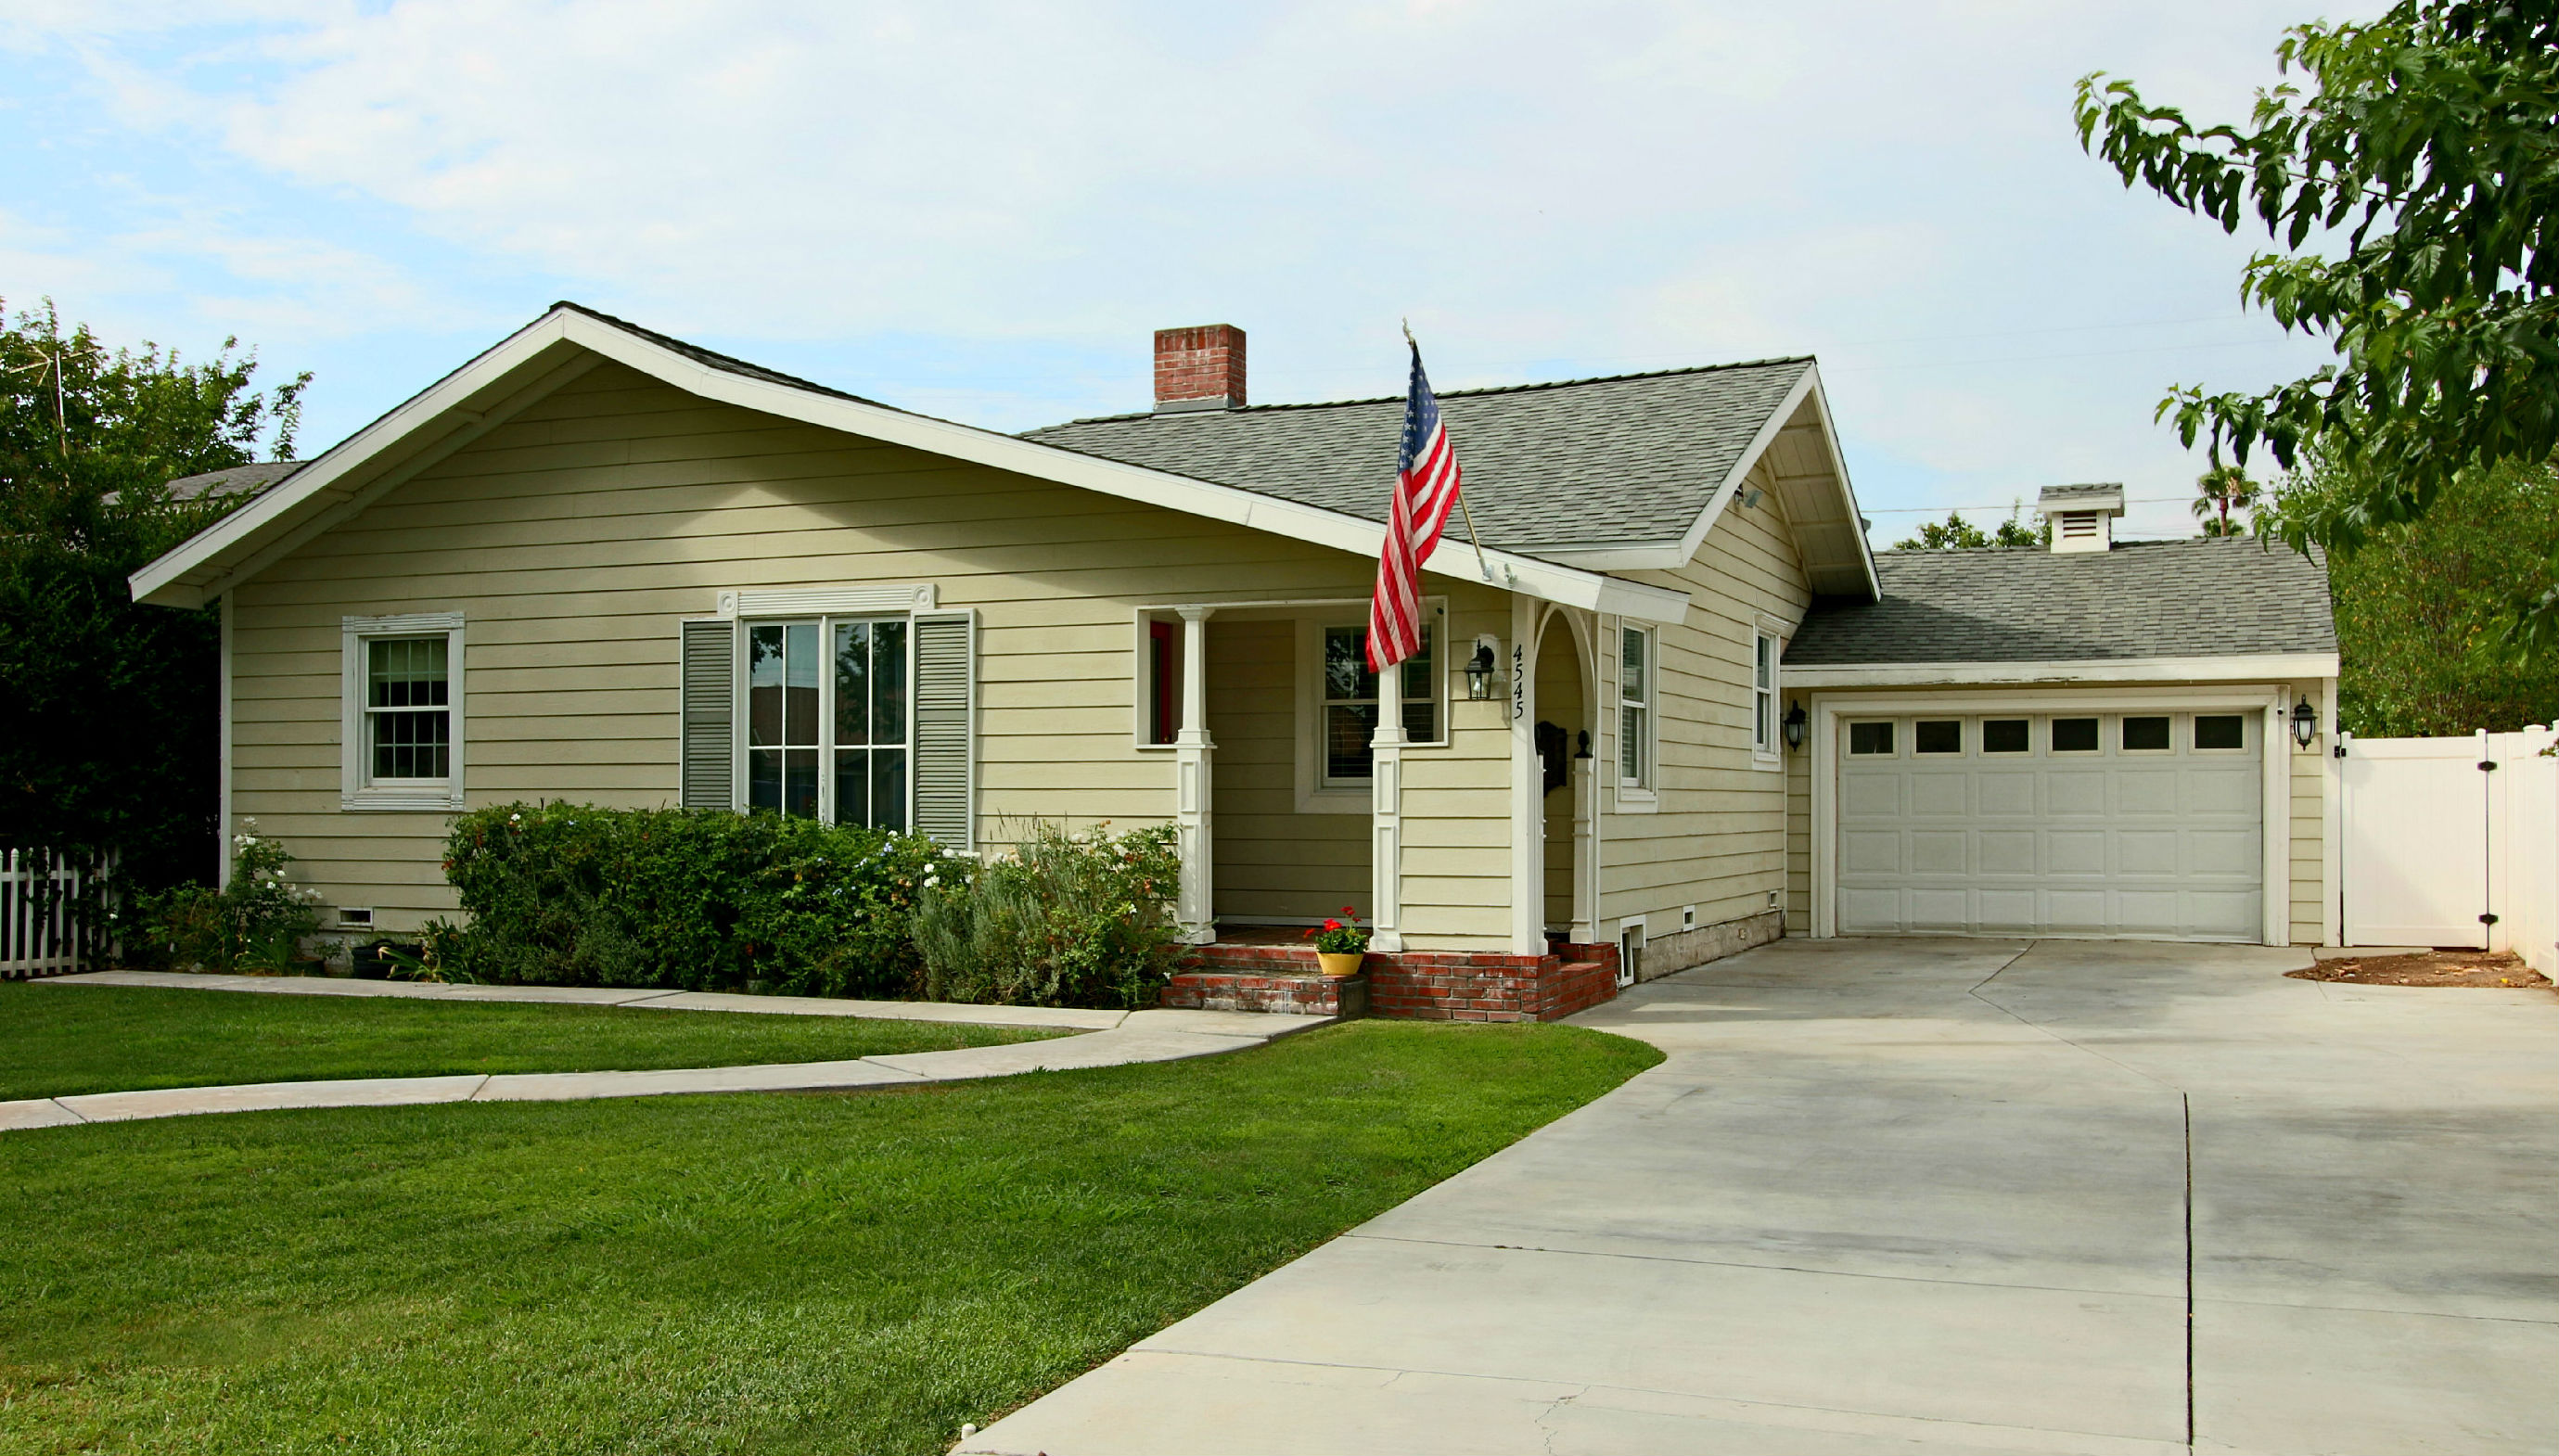 4545 Oakwood Place, Riverside, CA 92506 listed by THE SISTER TEAM